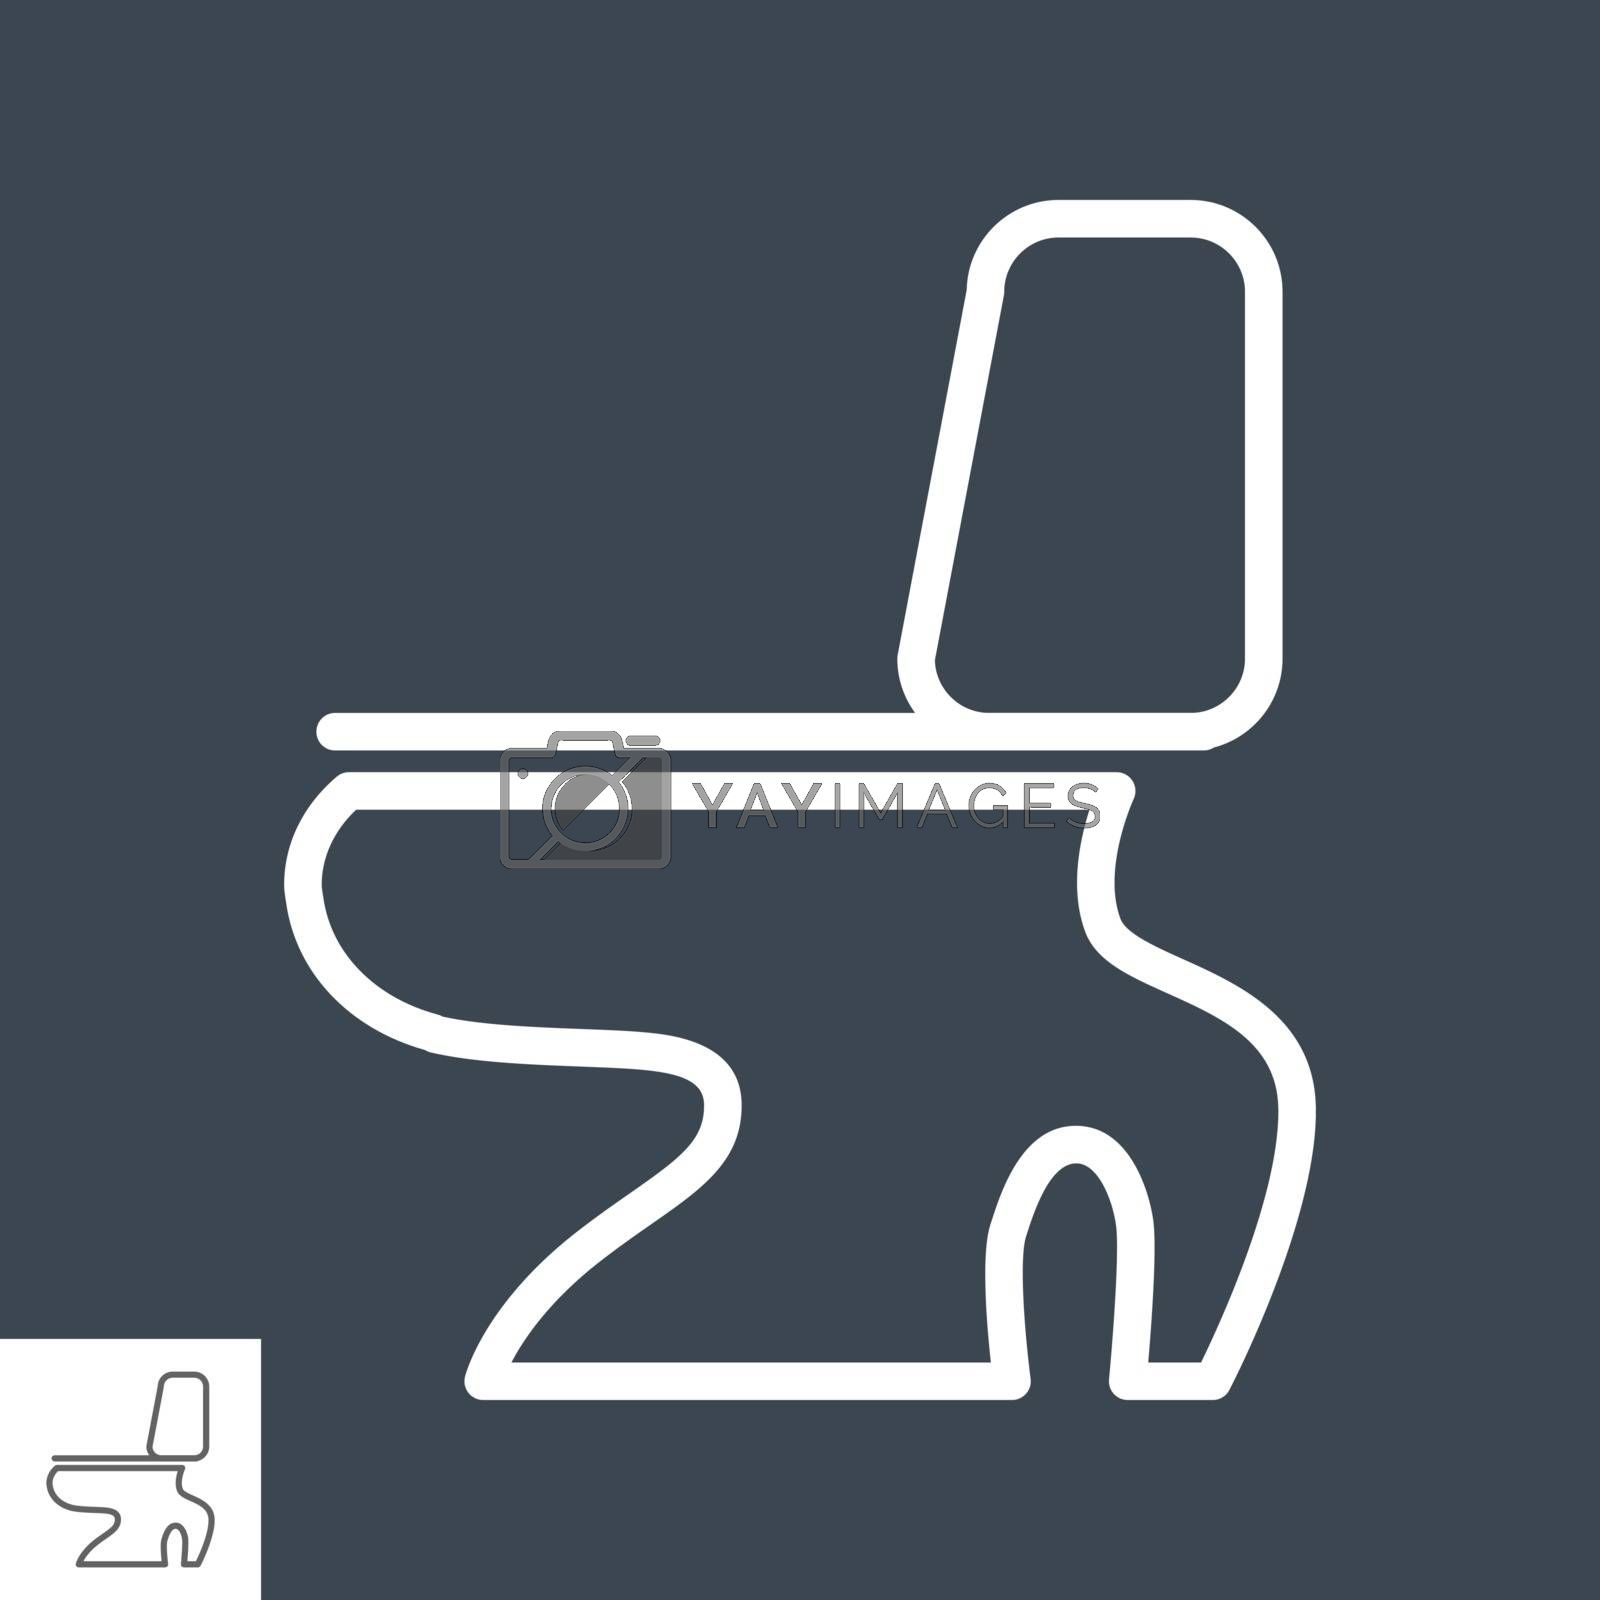 Toilet Thin Line Vector Icon Isolated on the Black Background.